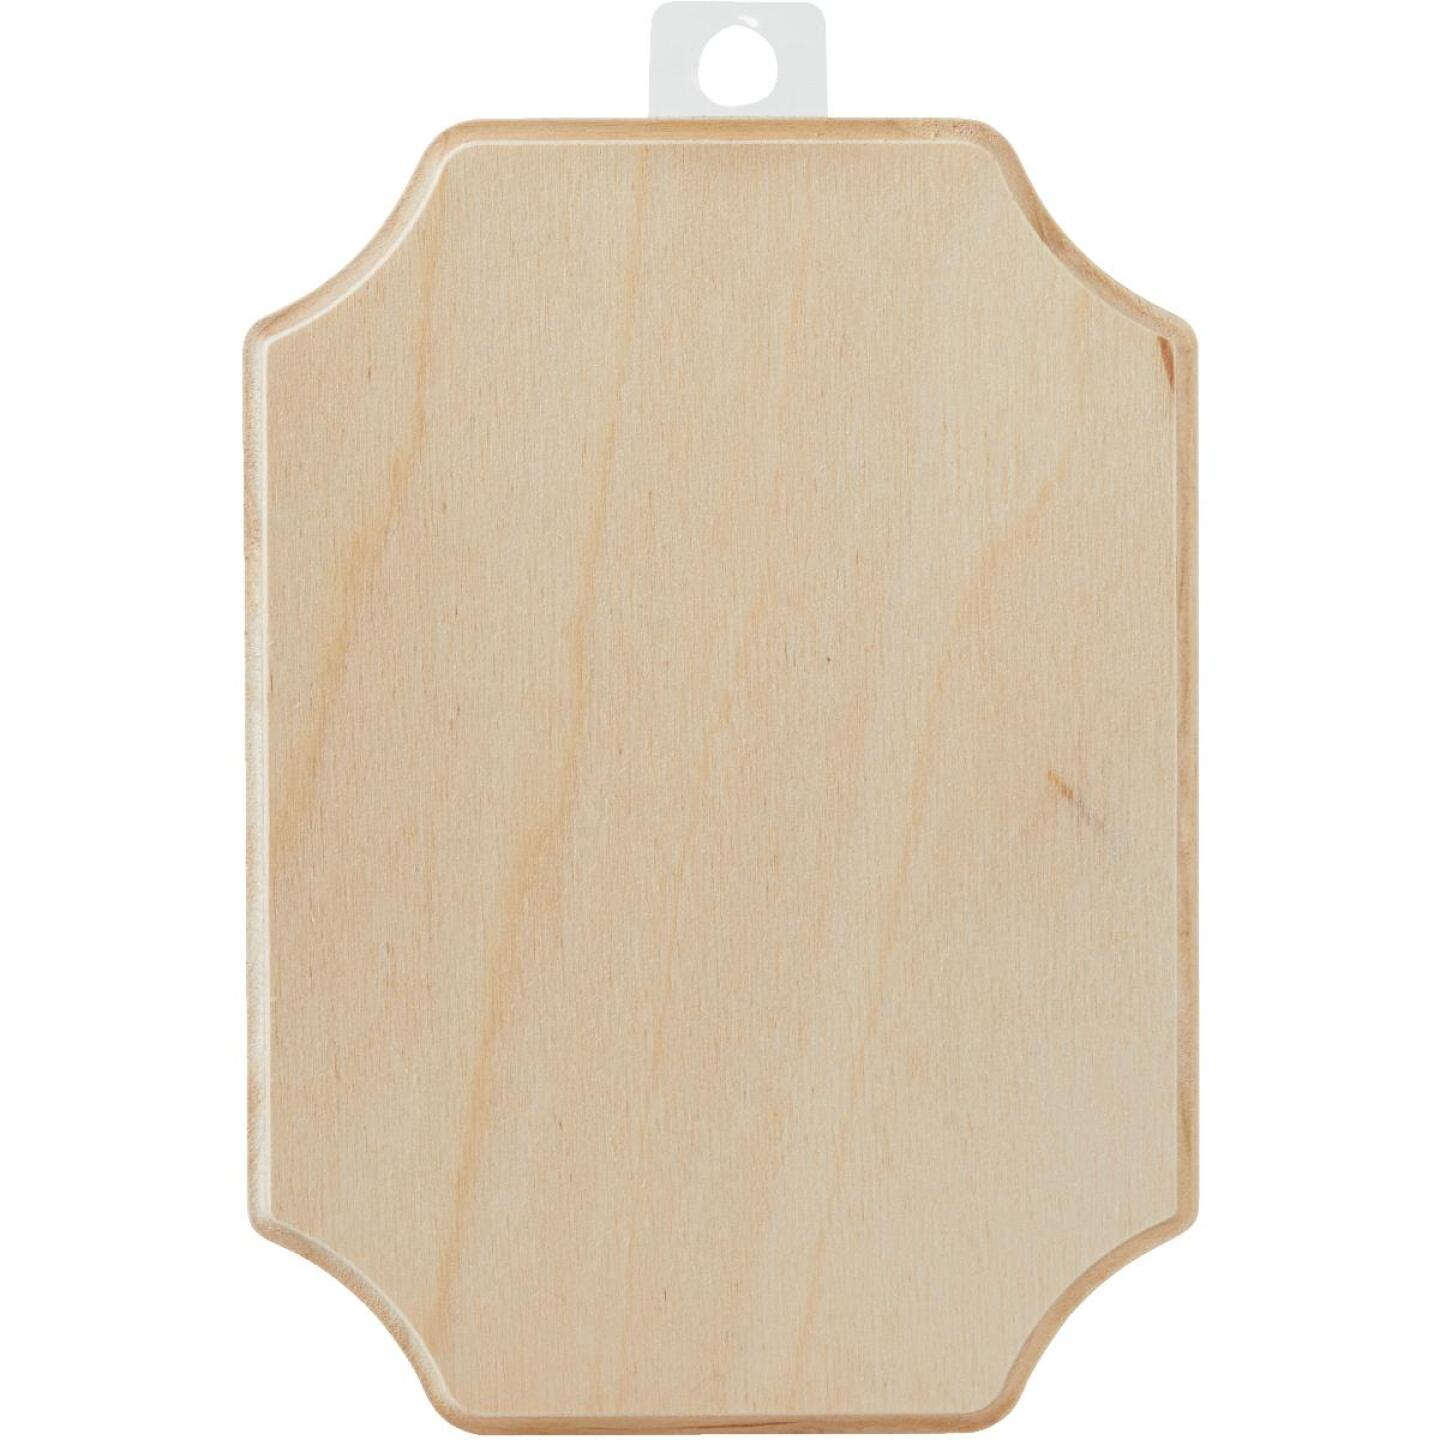 Walnut Hollow 5.25 In. x 7.25 In. French Corner Unfinished Wood Plaque Image 2